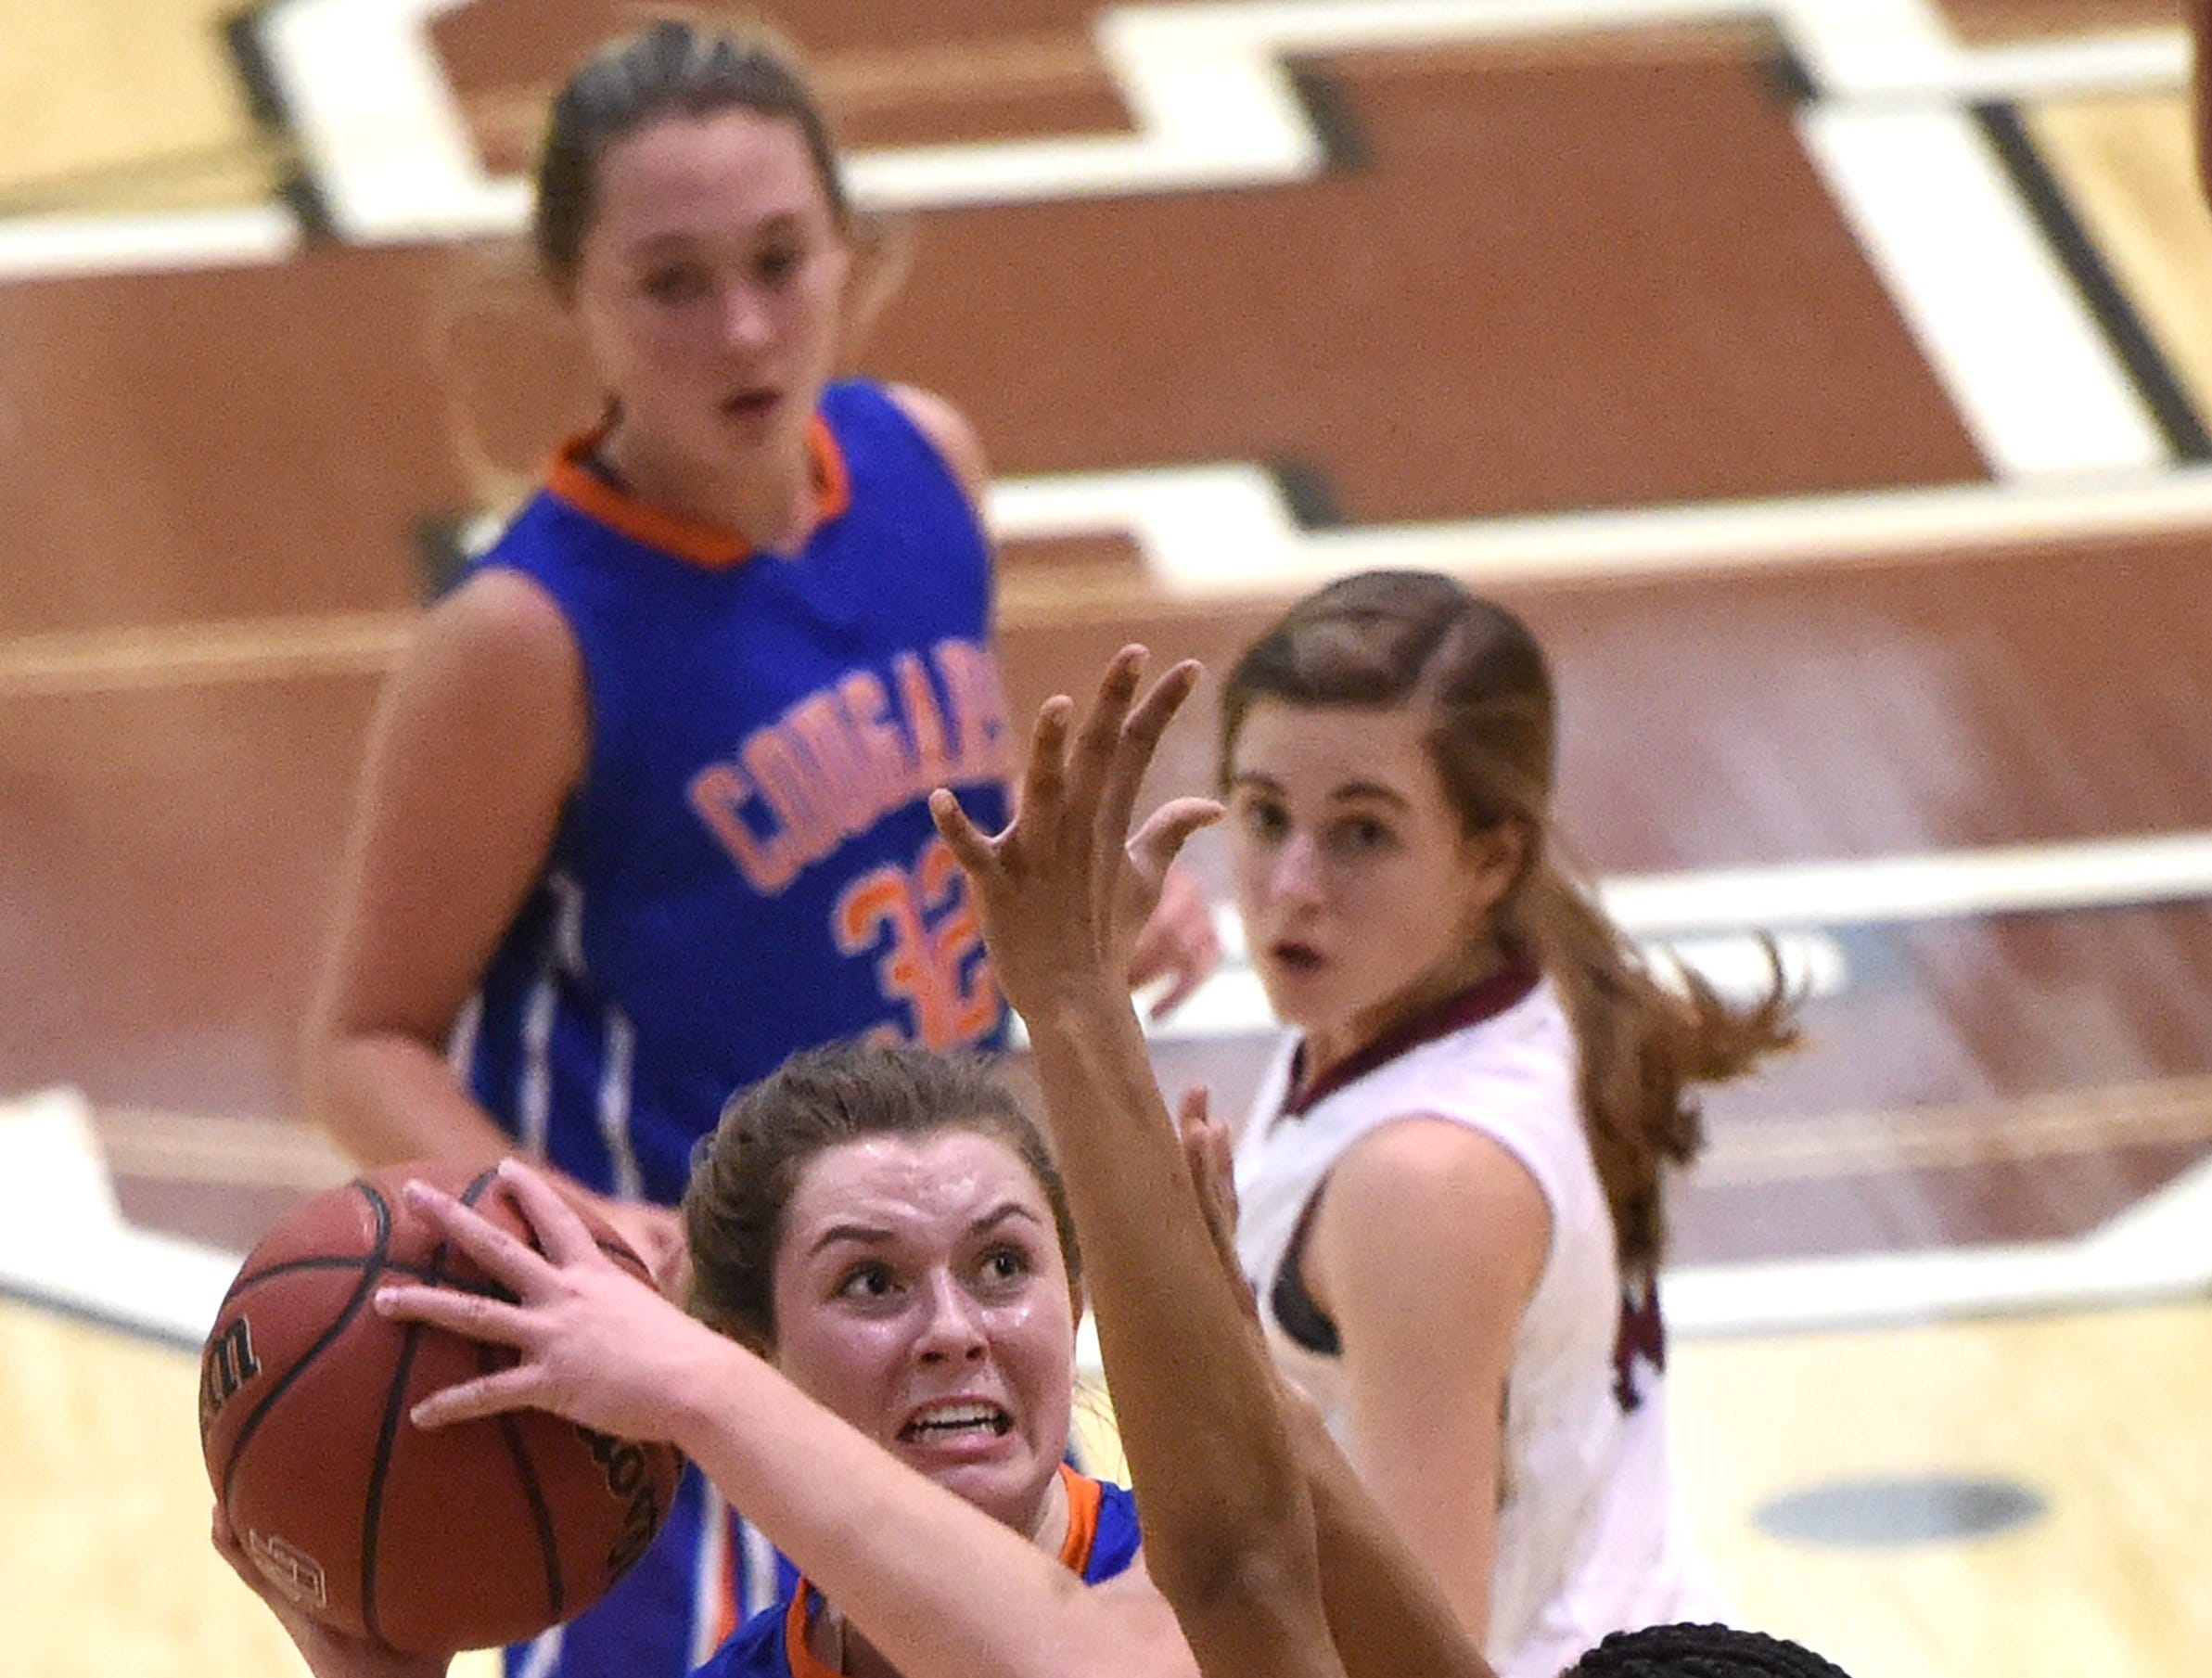 Campbell County's Sarah Cain (10) attempts a shot against Oak Ridge during a high school basketball game at Oak Ridge High School on Tuesday, Jan. 12, 2016.